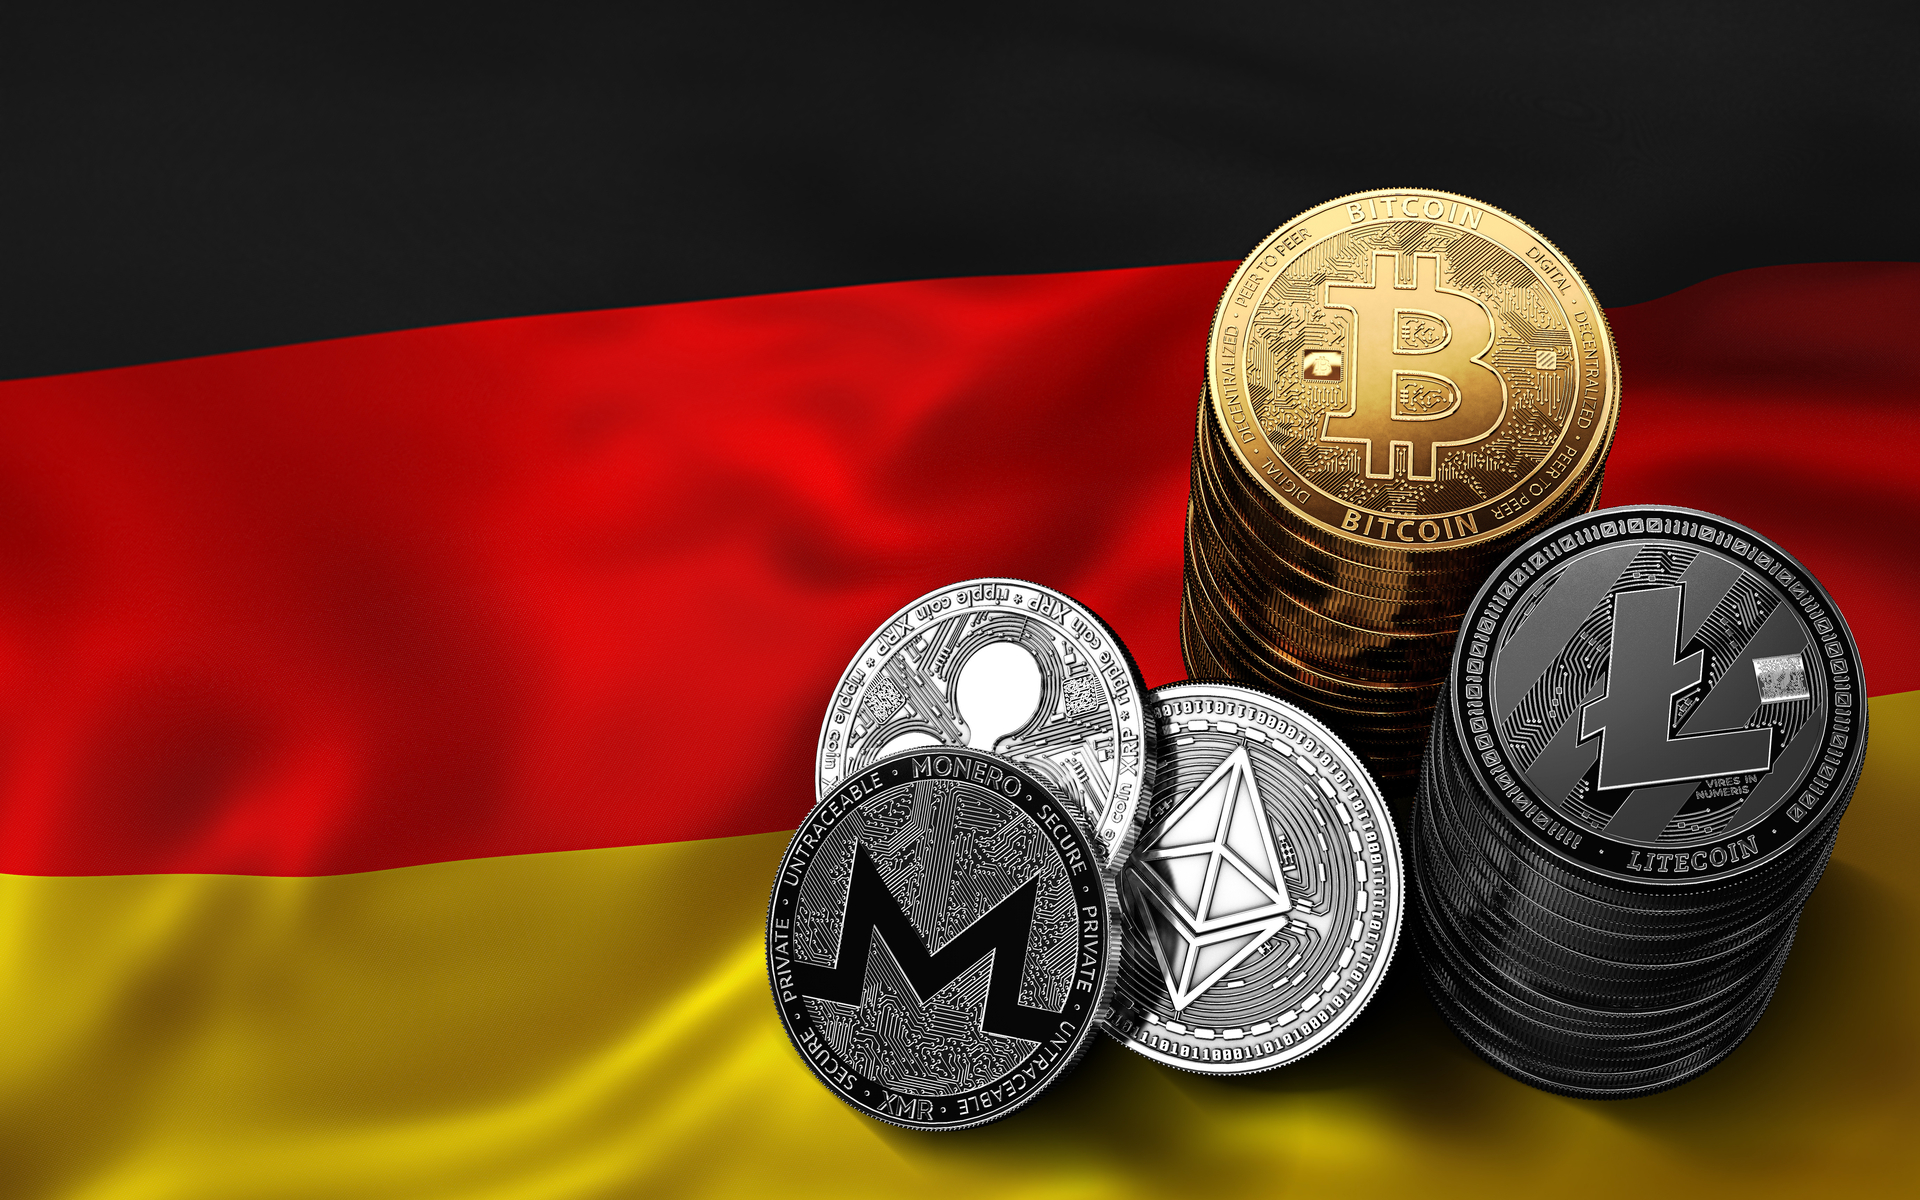 Germany issue new crypto regulations